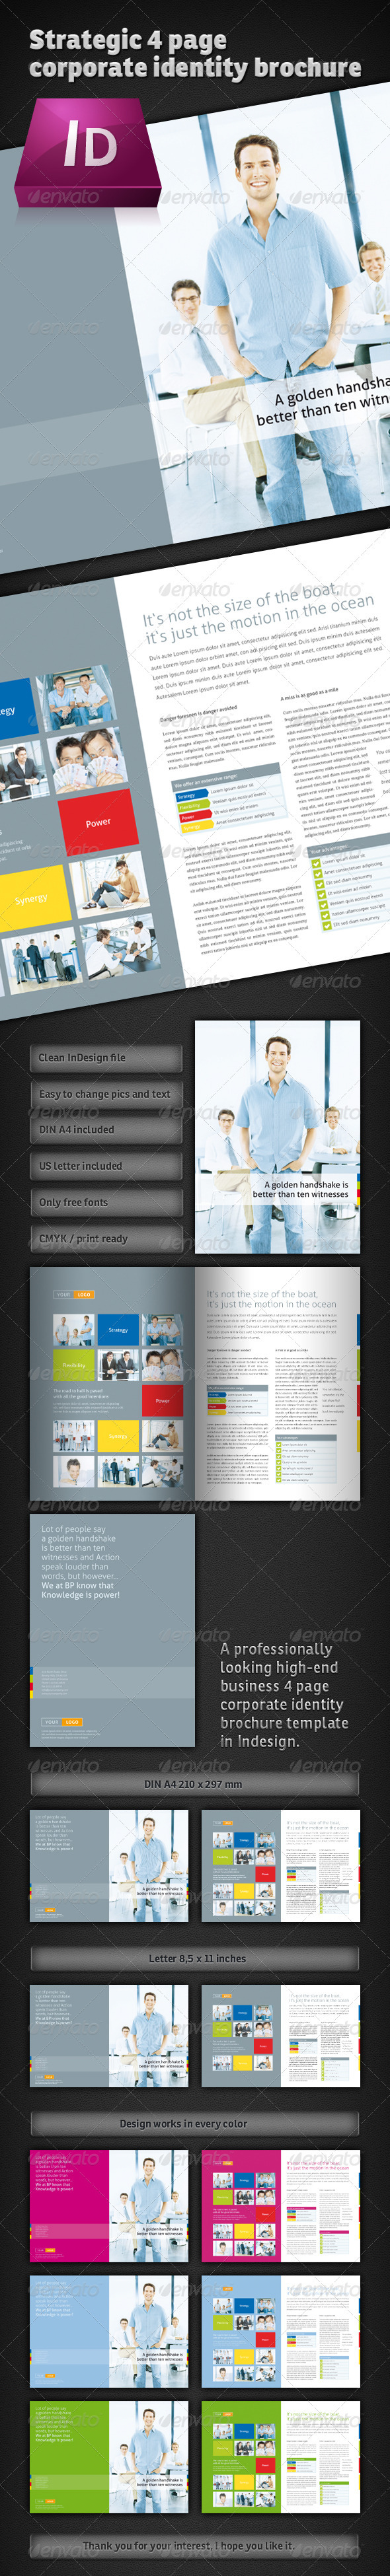 Strategic 4 Page Corporate Brochure - Corporate Brochures